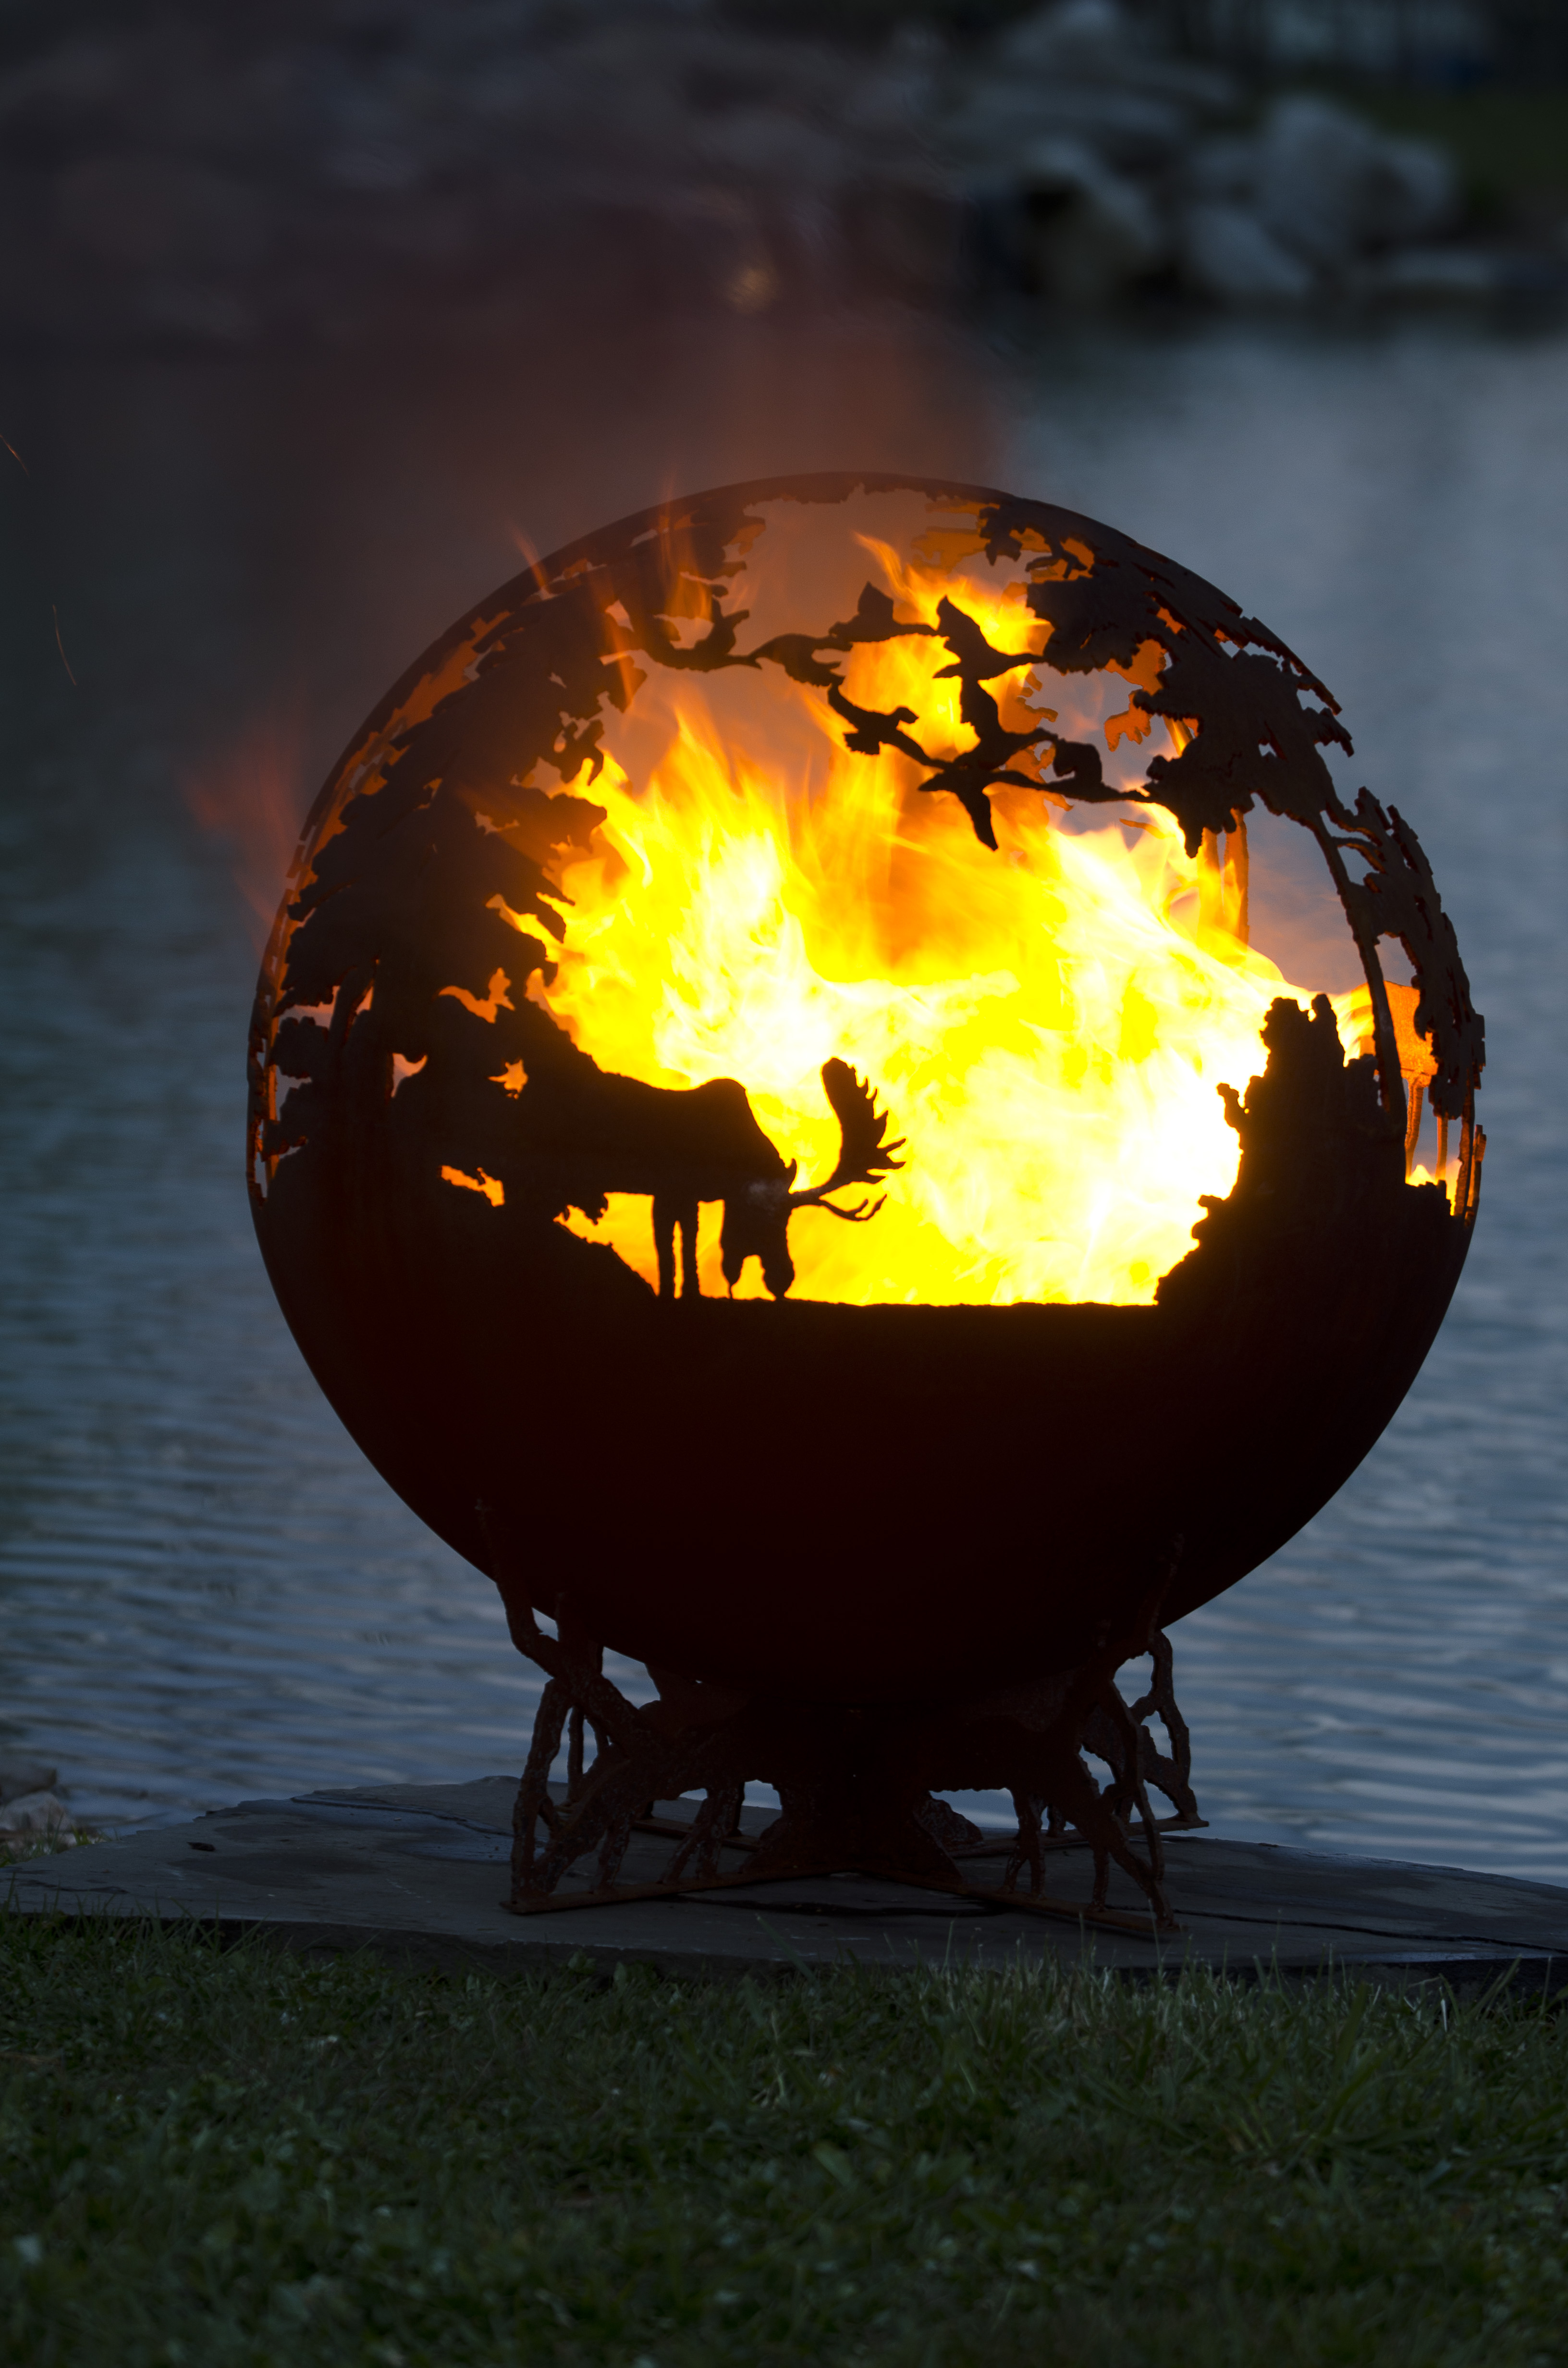 Up North Fire Pit Sphere The Fire Pit Gallery intended for measurements 3264 X 4928